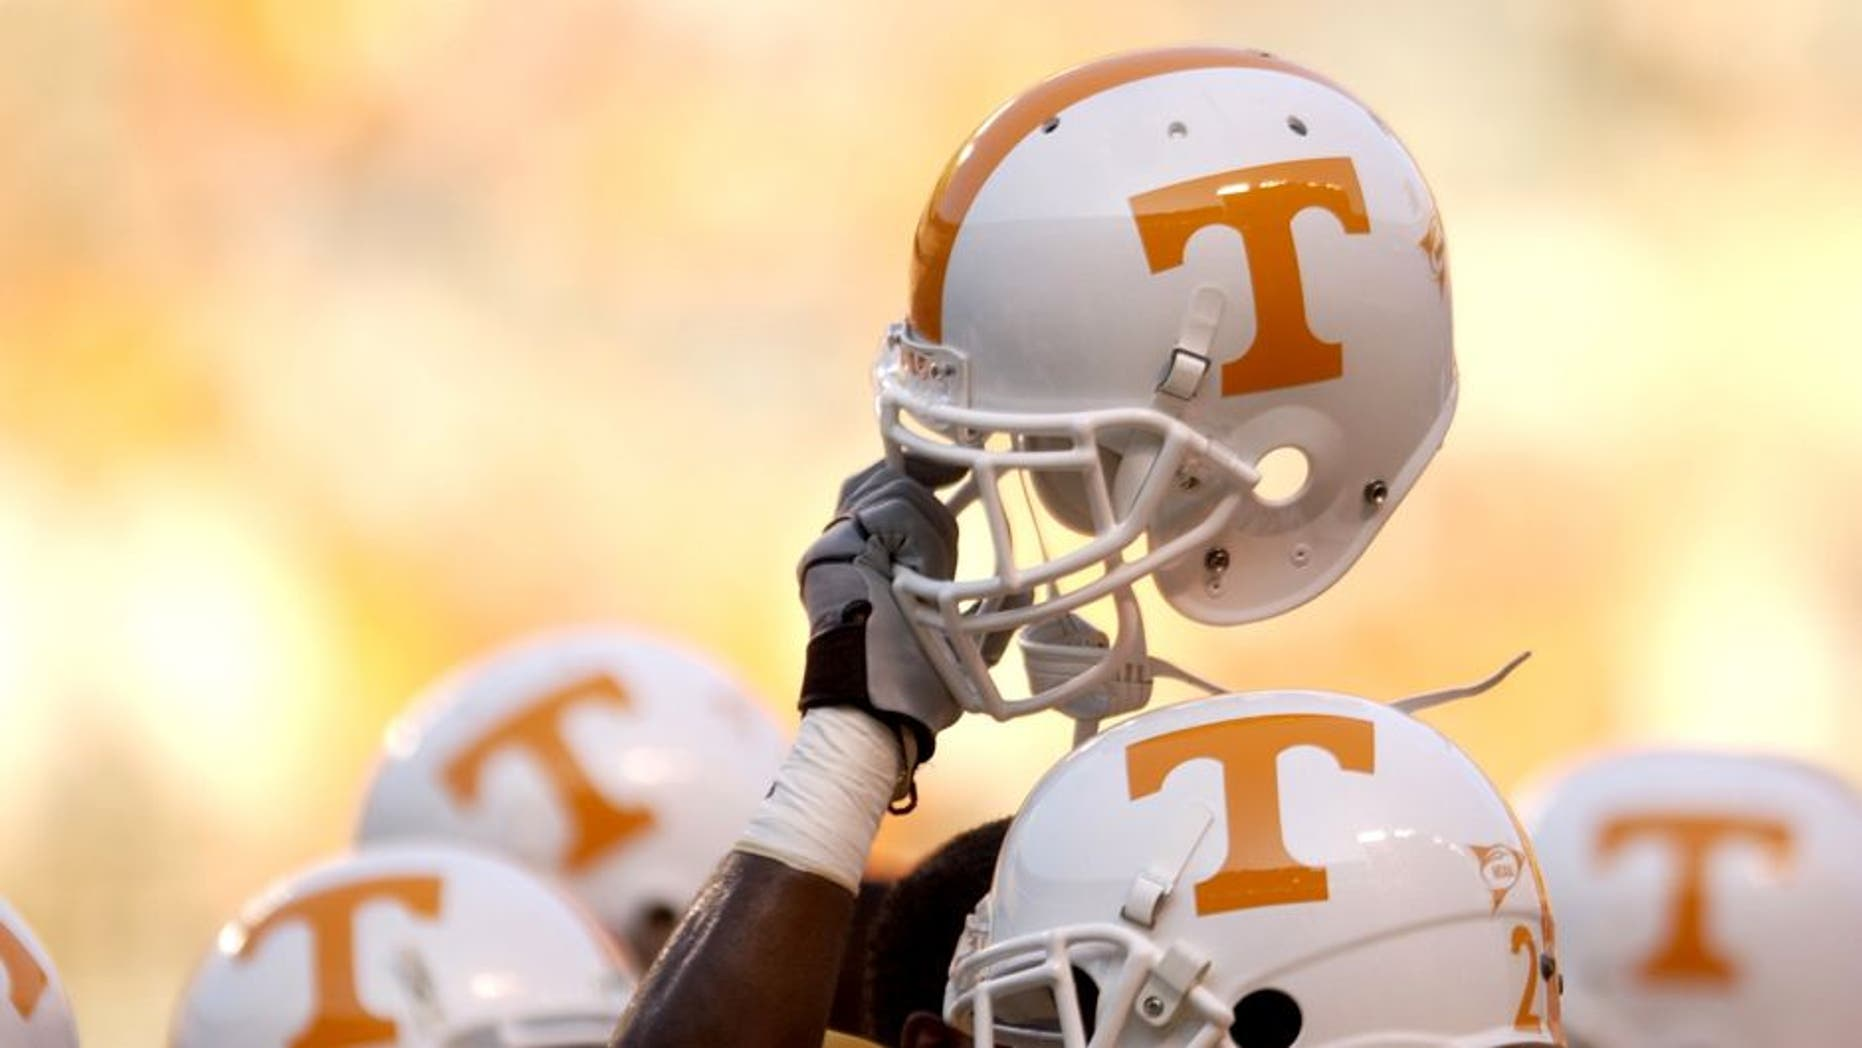 KNOXVILLE, TN - SEPTEMBER 7: A Tennessee Volunteer holds up his helmet in the team huddle before the NCAA football game against the Middle Tennessee State Blue Raiders at Neyland Stadium on September 7, 2002 in Knoxville, Tennessee. Tennessee won 26-3. (Photo by Elsa/Getty Images)